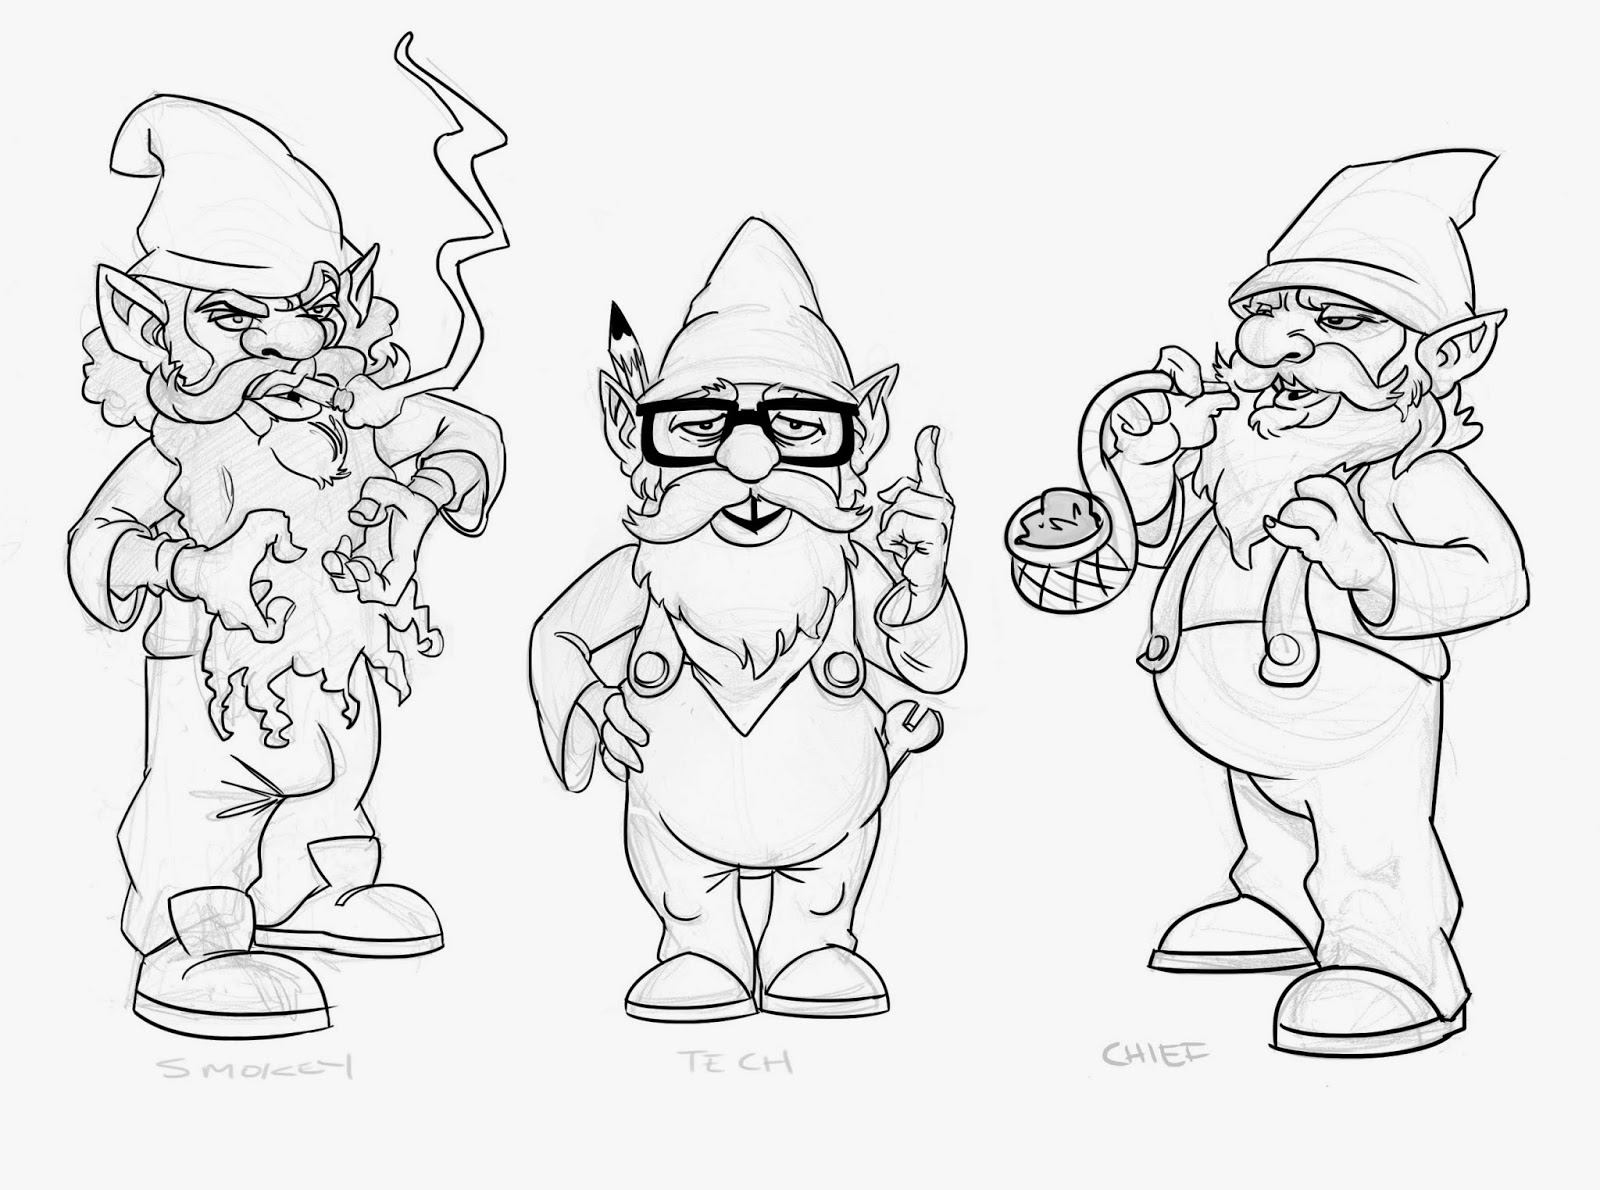 how to draw a gnome learn how to draw gnomeo from gnomeo juliet gnomeo gnome draw a how to